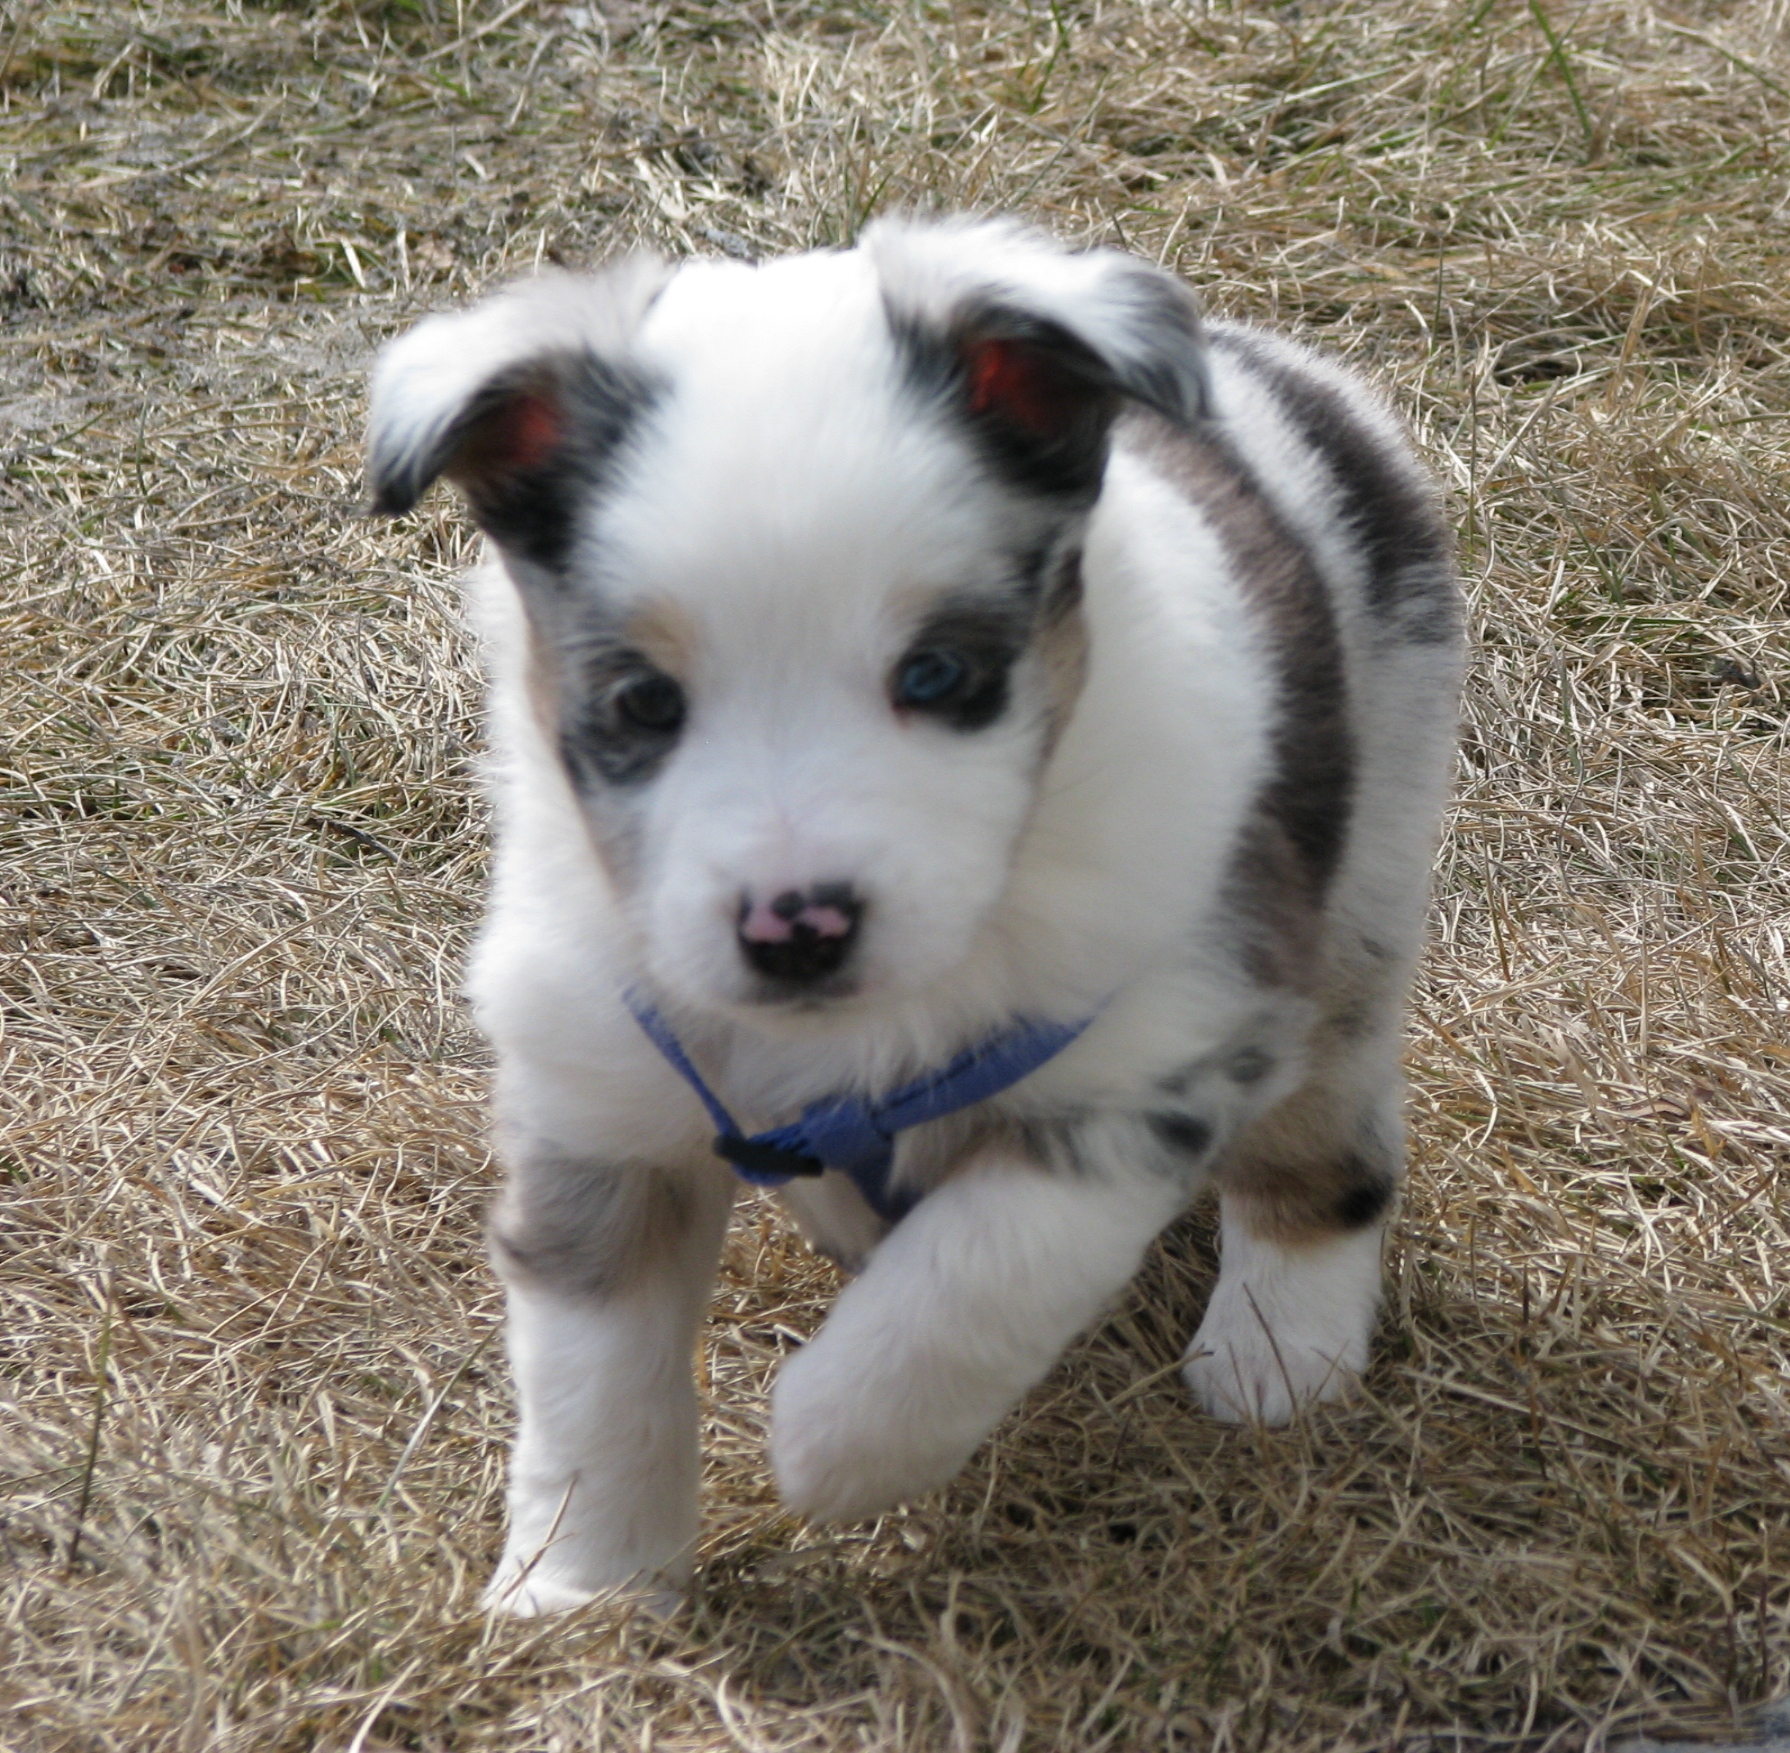 Australian Shepherd Dog Picture #5499 | Pet Gallery | PetPeoplesPlace ...